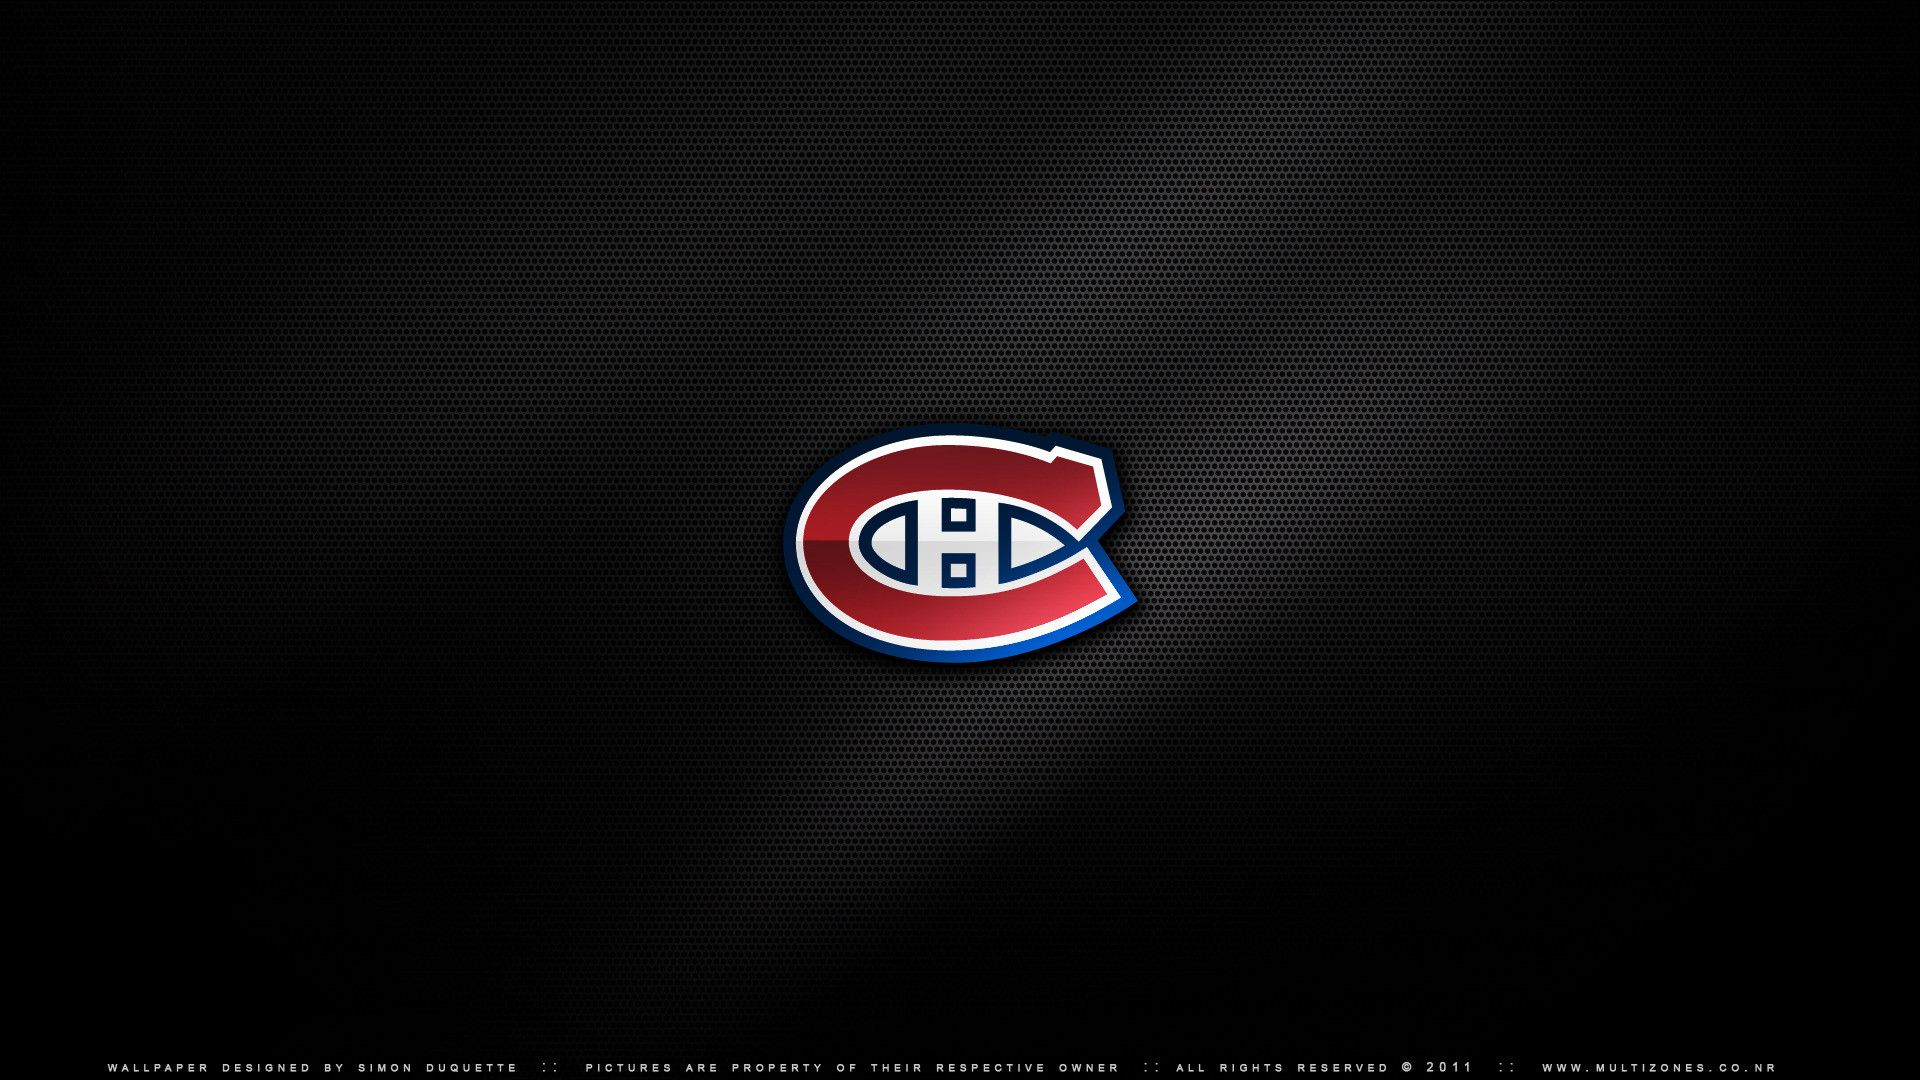 Simple Wallpaper Logo Montreal Canadiens - Montreal-Canadiens-montreal-canadiens-40371160-1920-1080  Graphic_194999.jpg